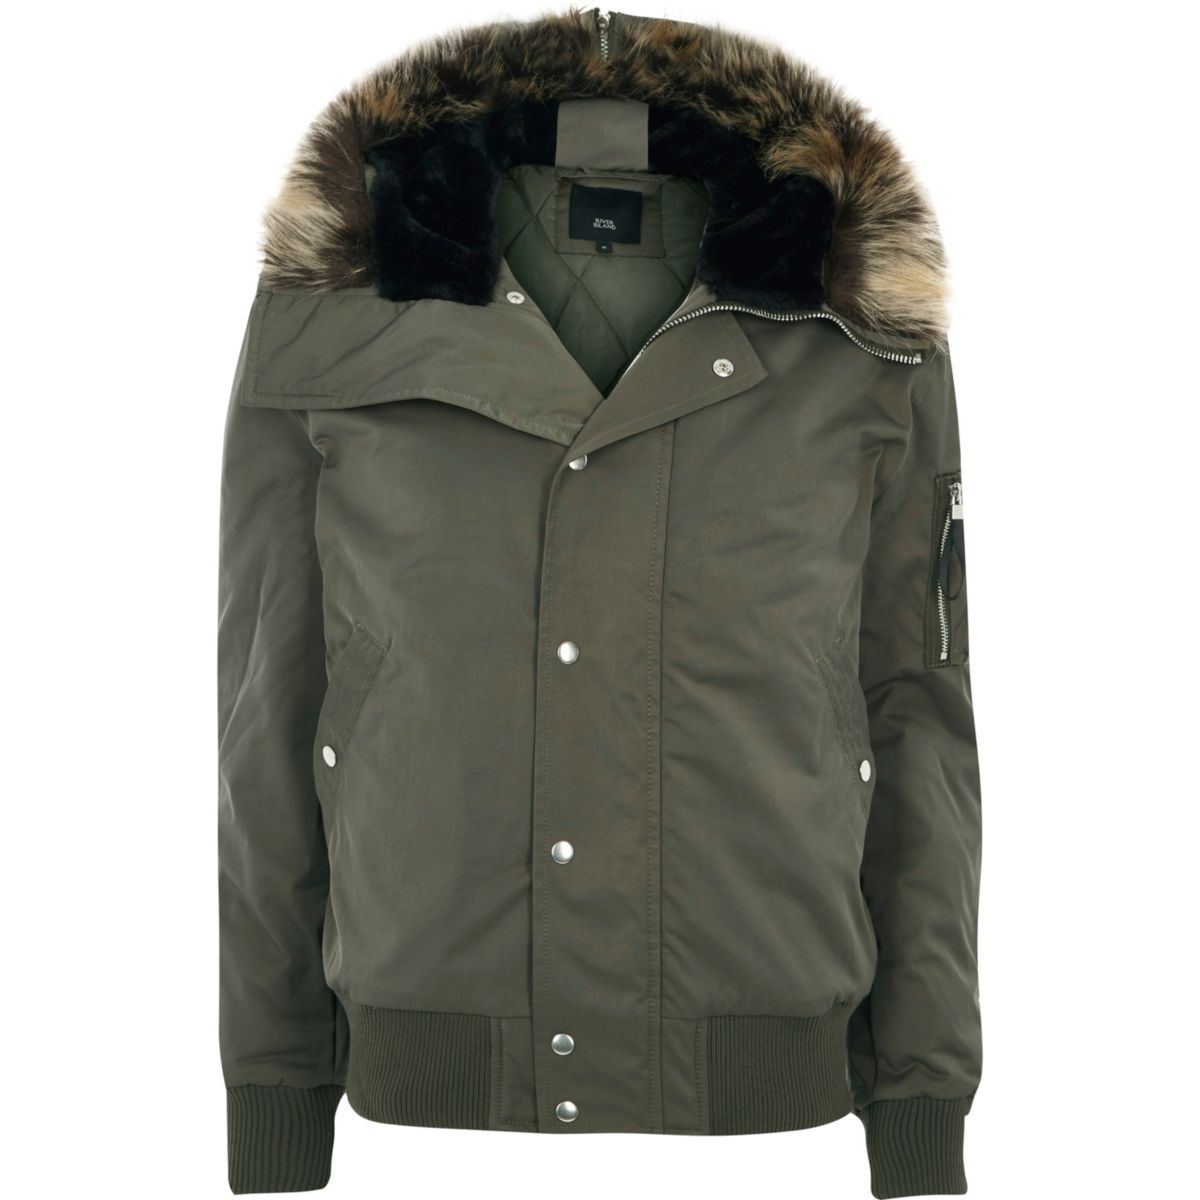 River Island Mens Jacket Size Guide